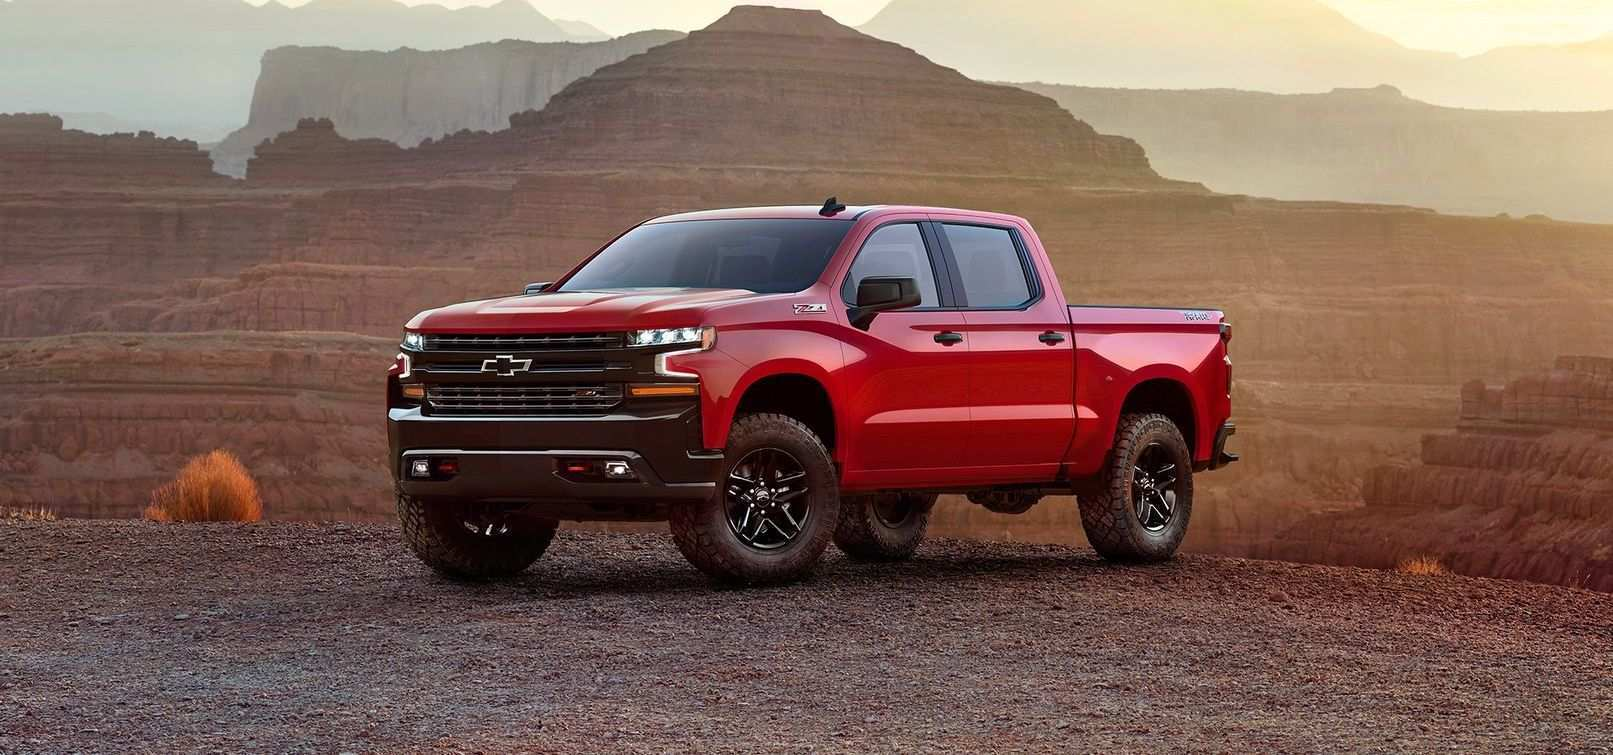 31 Concept of 2020 BMW Sierra Vs Silverado Price and Review with 2020 BMW Sierra Vs Silverado